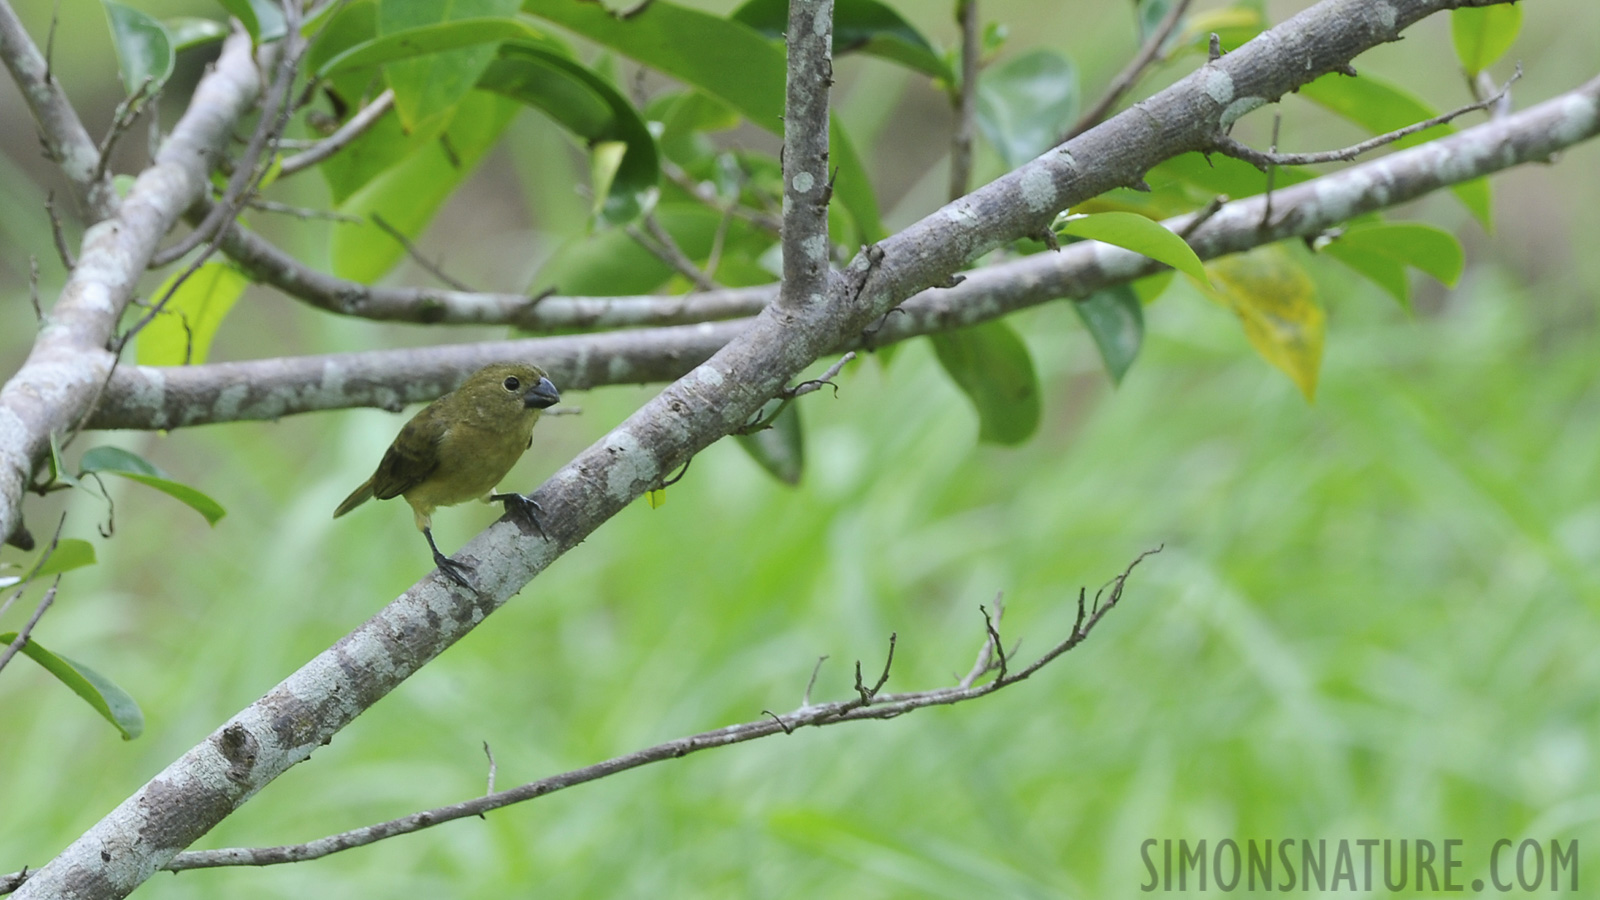 Large-billed Seed-finch [Oryzoborus crassirostris]